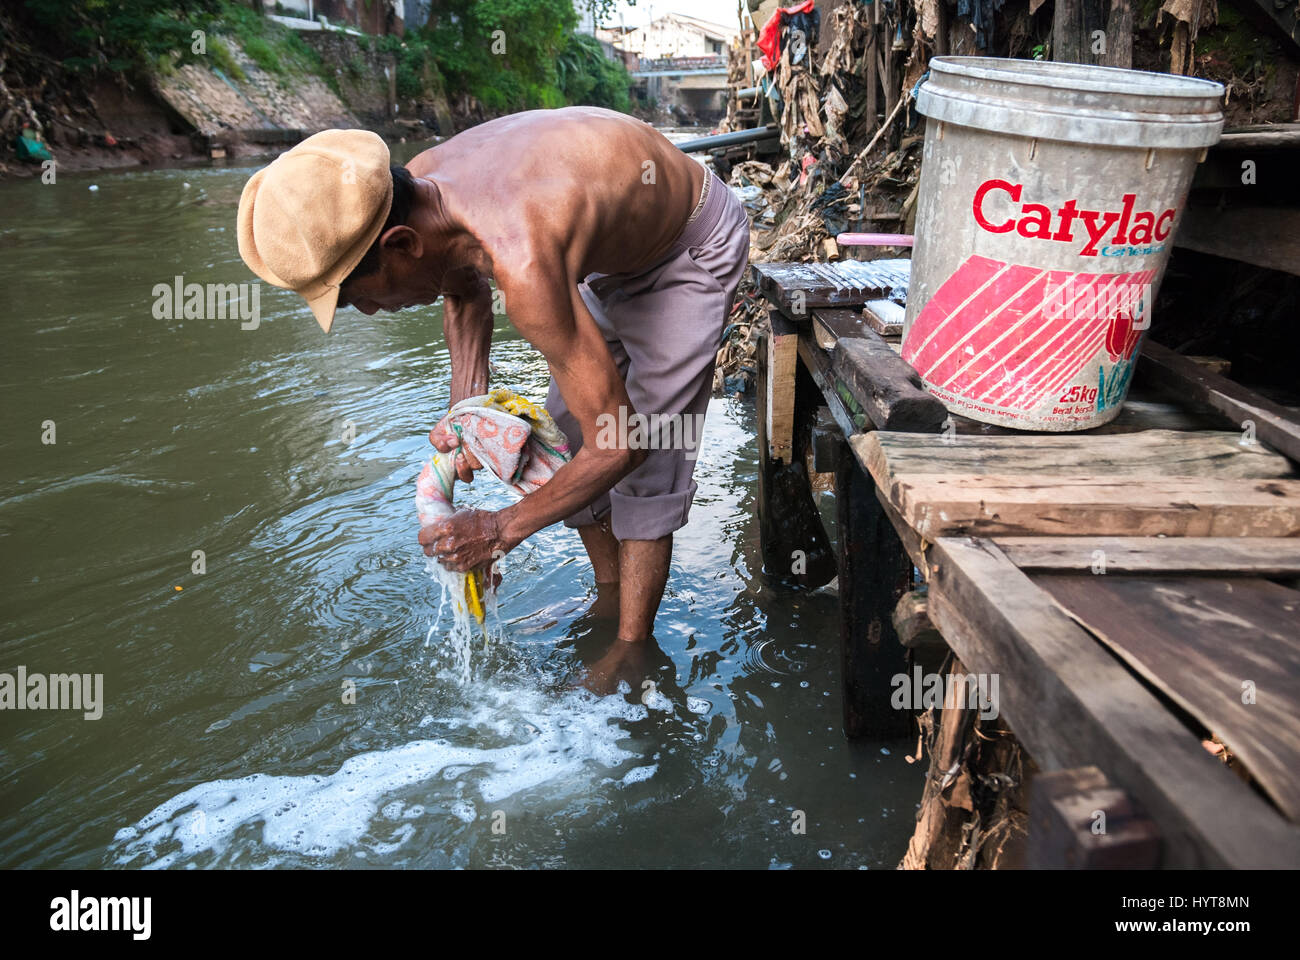 A man washes a towel on the Ciliwung River in Bukit Duri area, Jakarta, Indonesia. © Reynold Sumayku Stock Photo